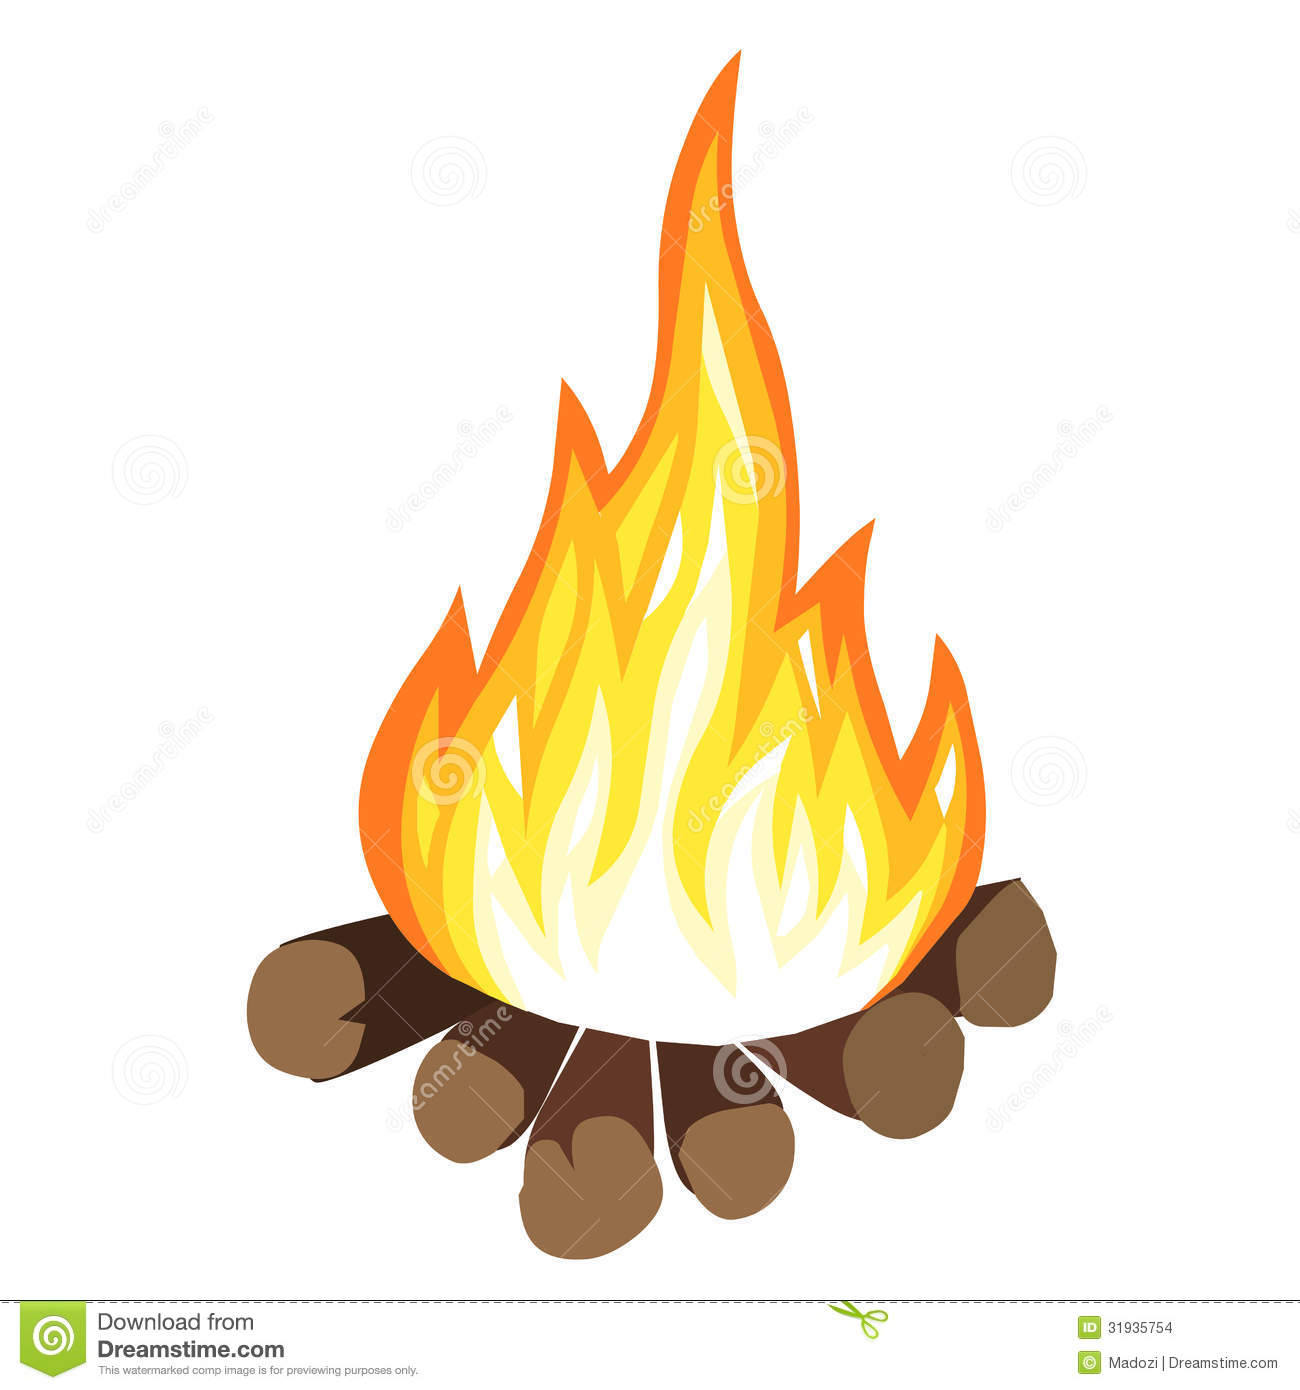 Campfire clipart #10, Download drawings